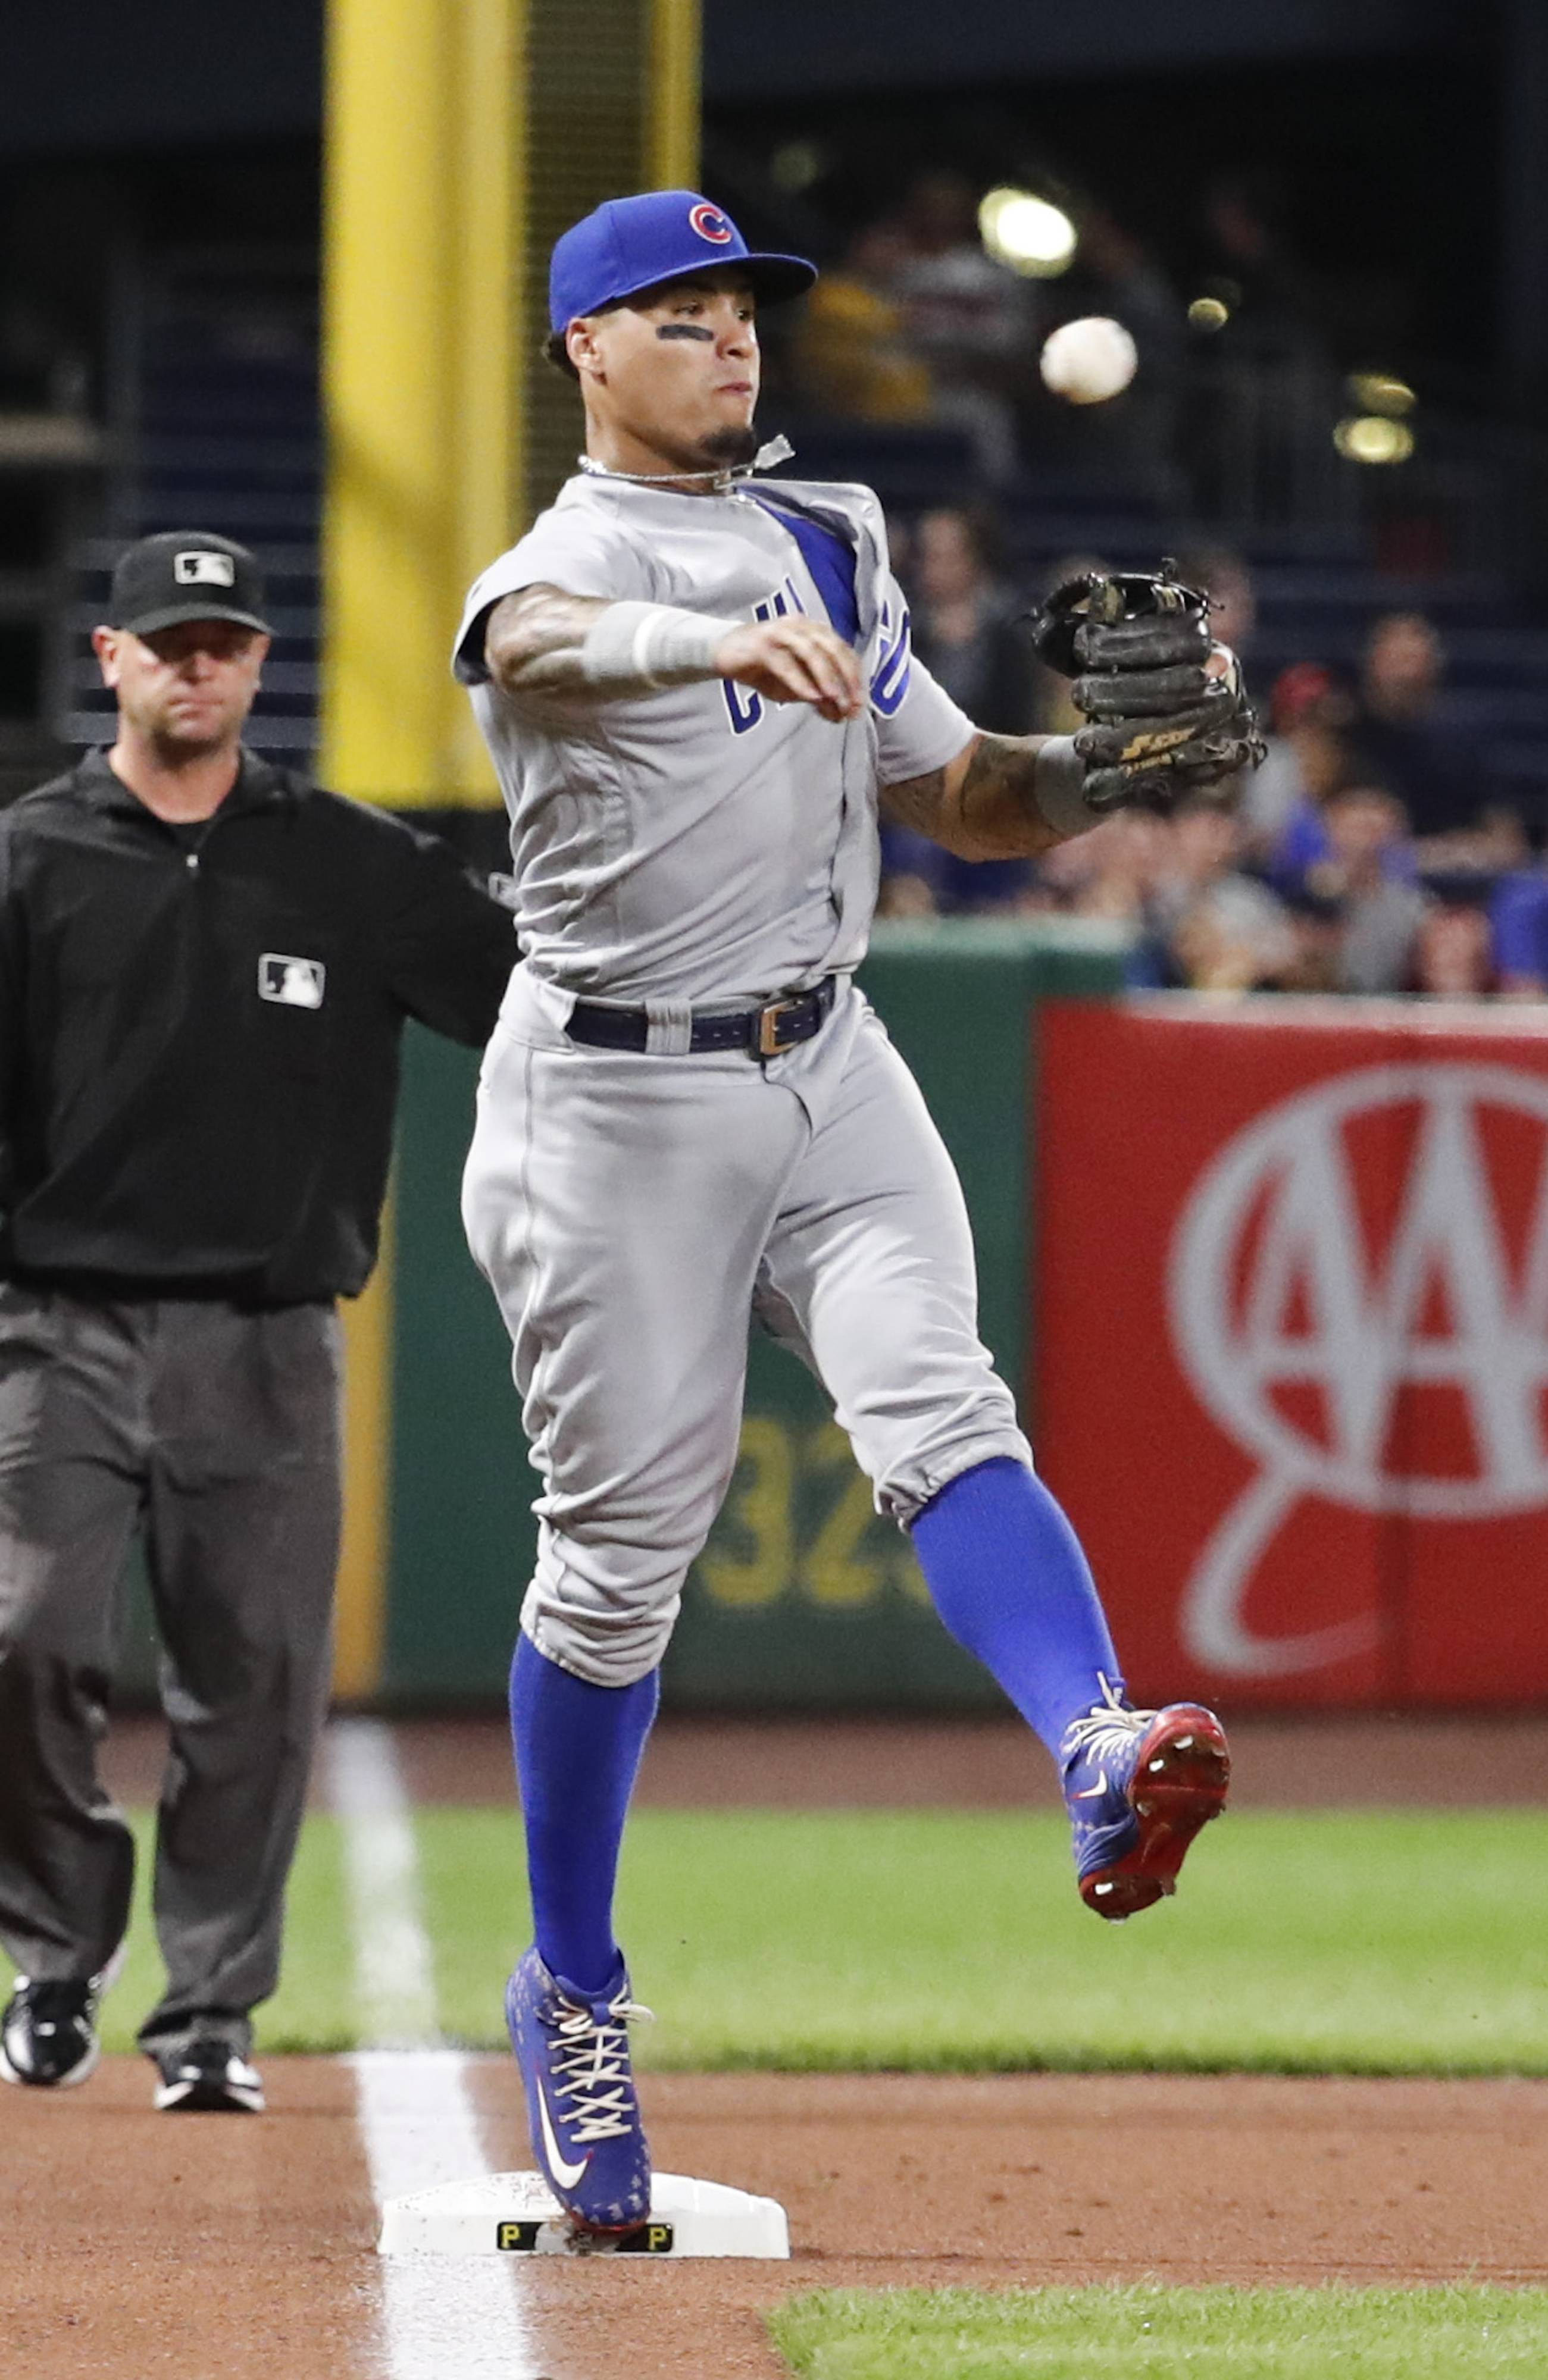 Chicago Cubs third baseman Javier Baez throws to first to complete a double play on Pittsburgh Pirates' David Freese after forcing out Starling Marte at third to end the first inning of a baseball game Friday, Aug. 17, 2018, in Pittsburgh.